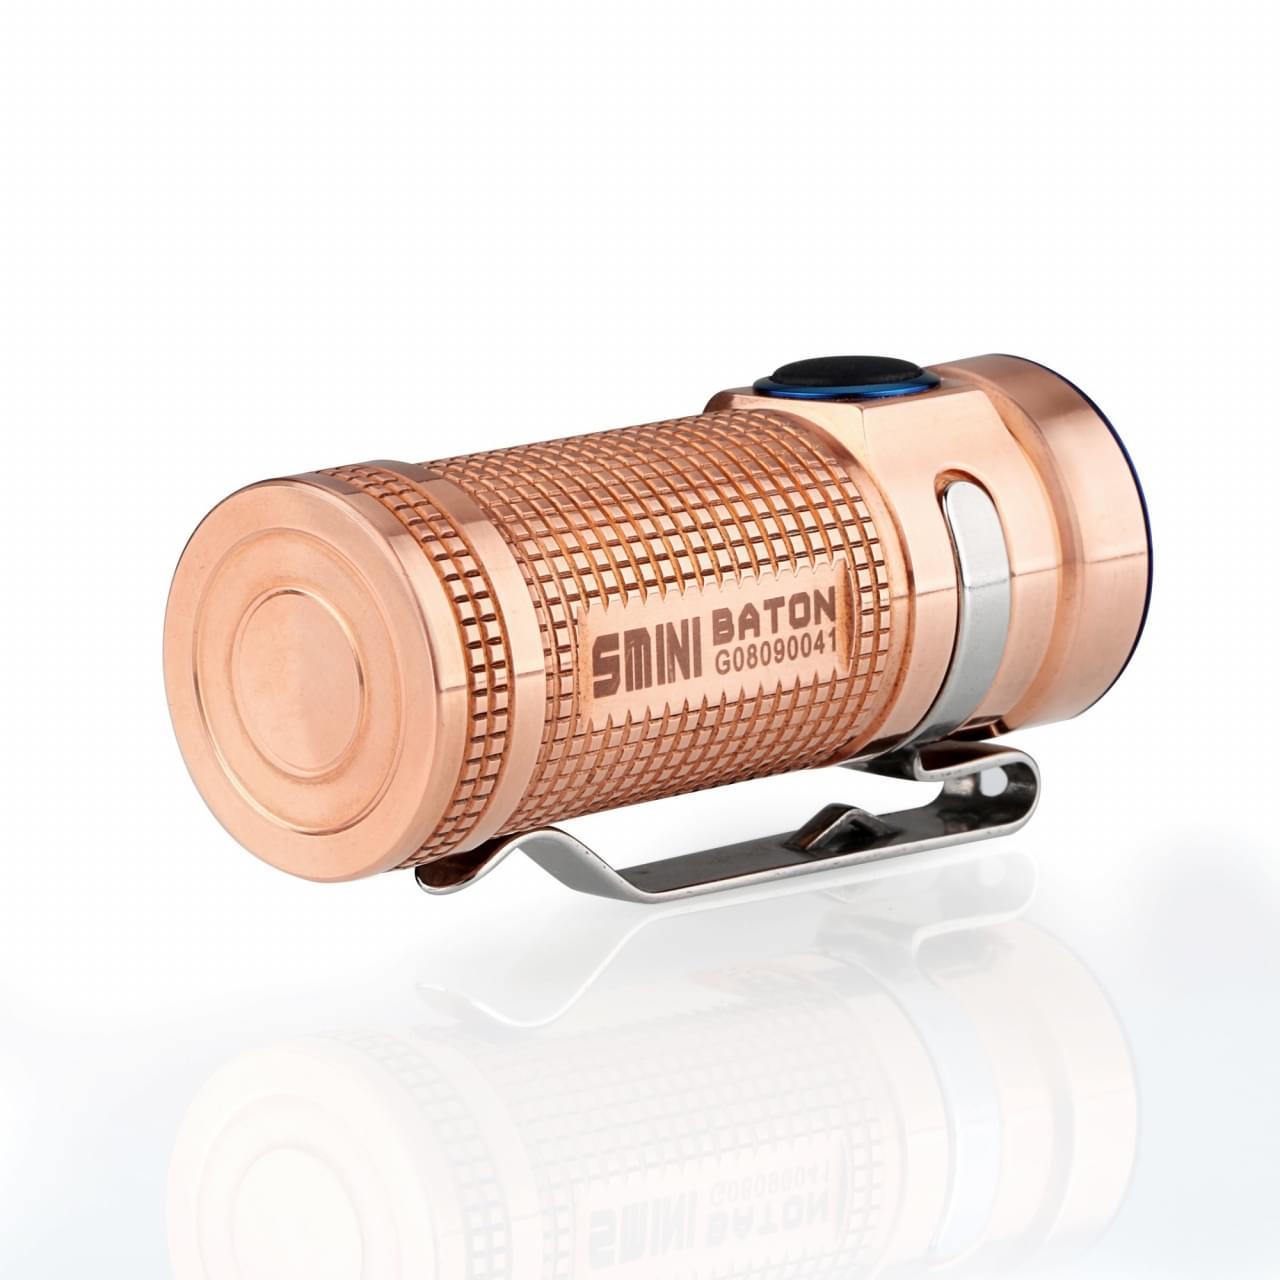 Olight Olight SMINI Limited edition Raw Co